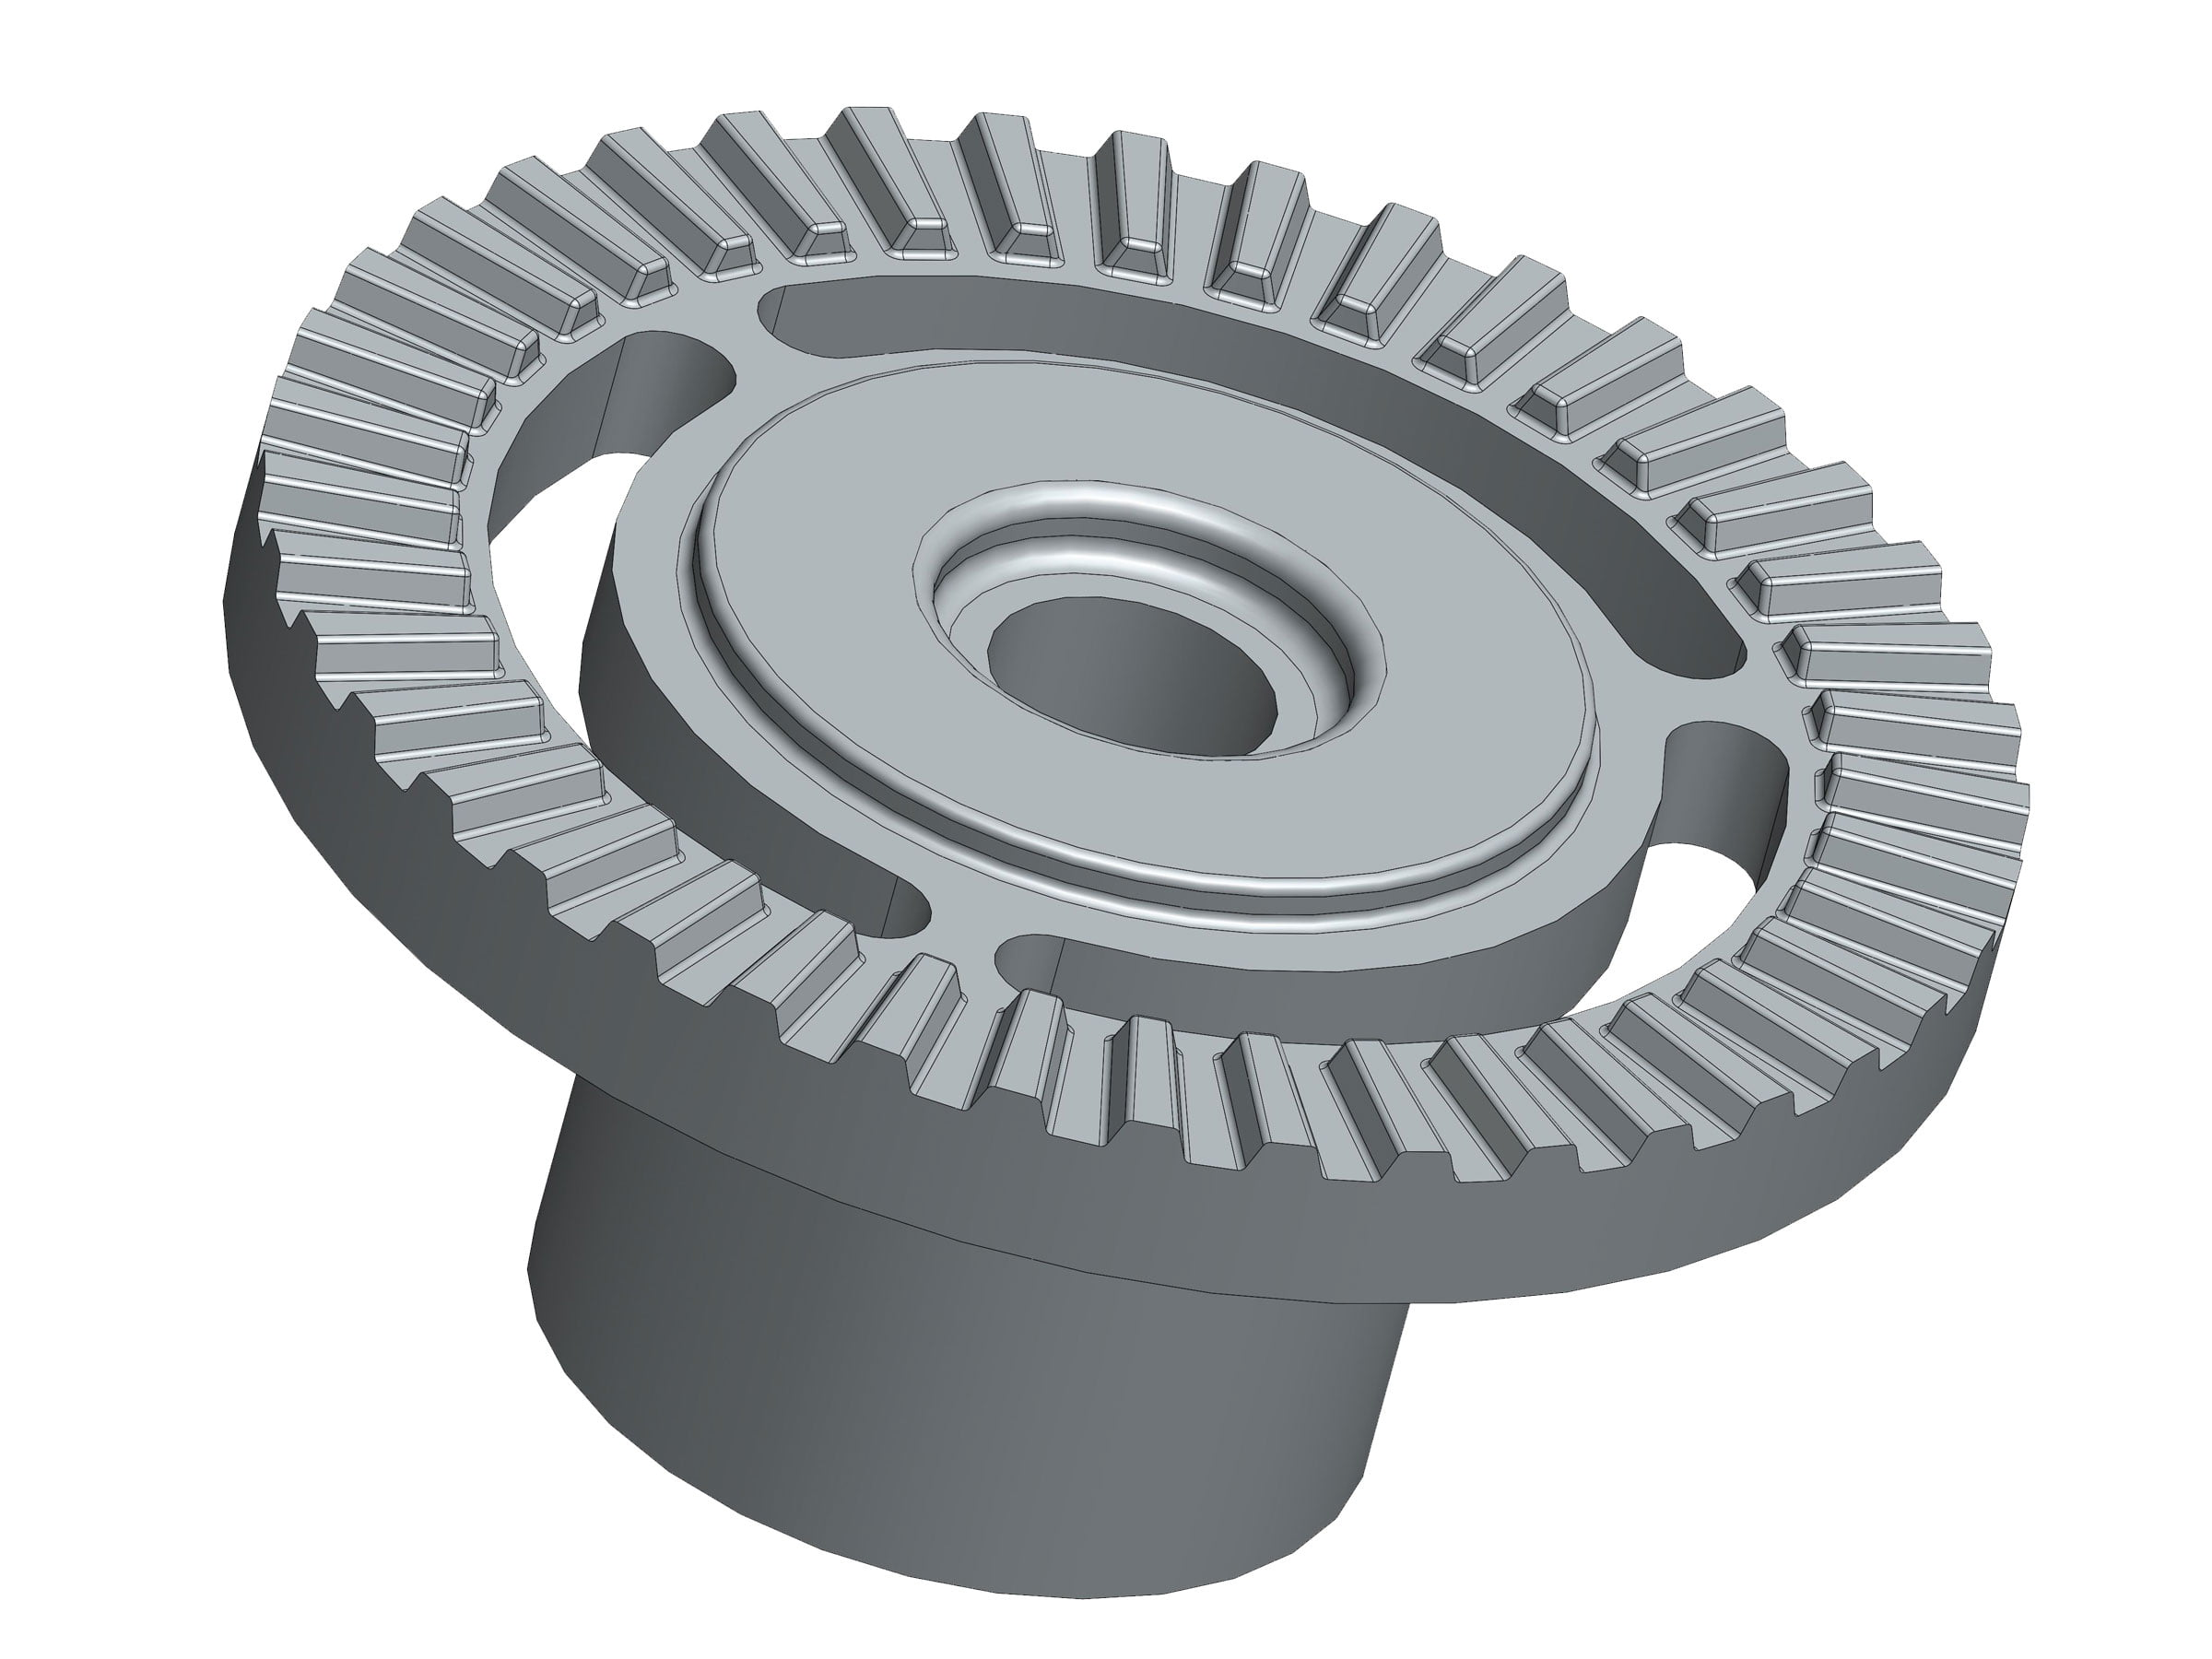 powder metal part for medical devices